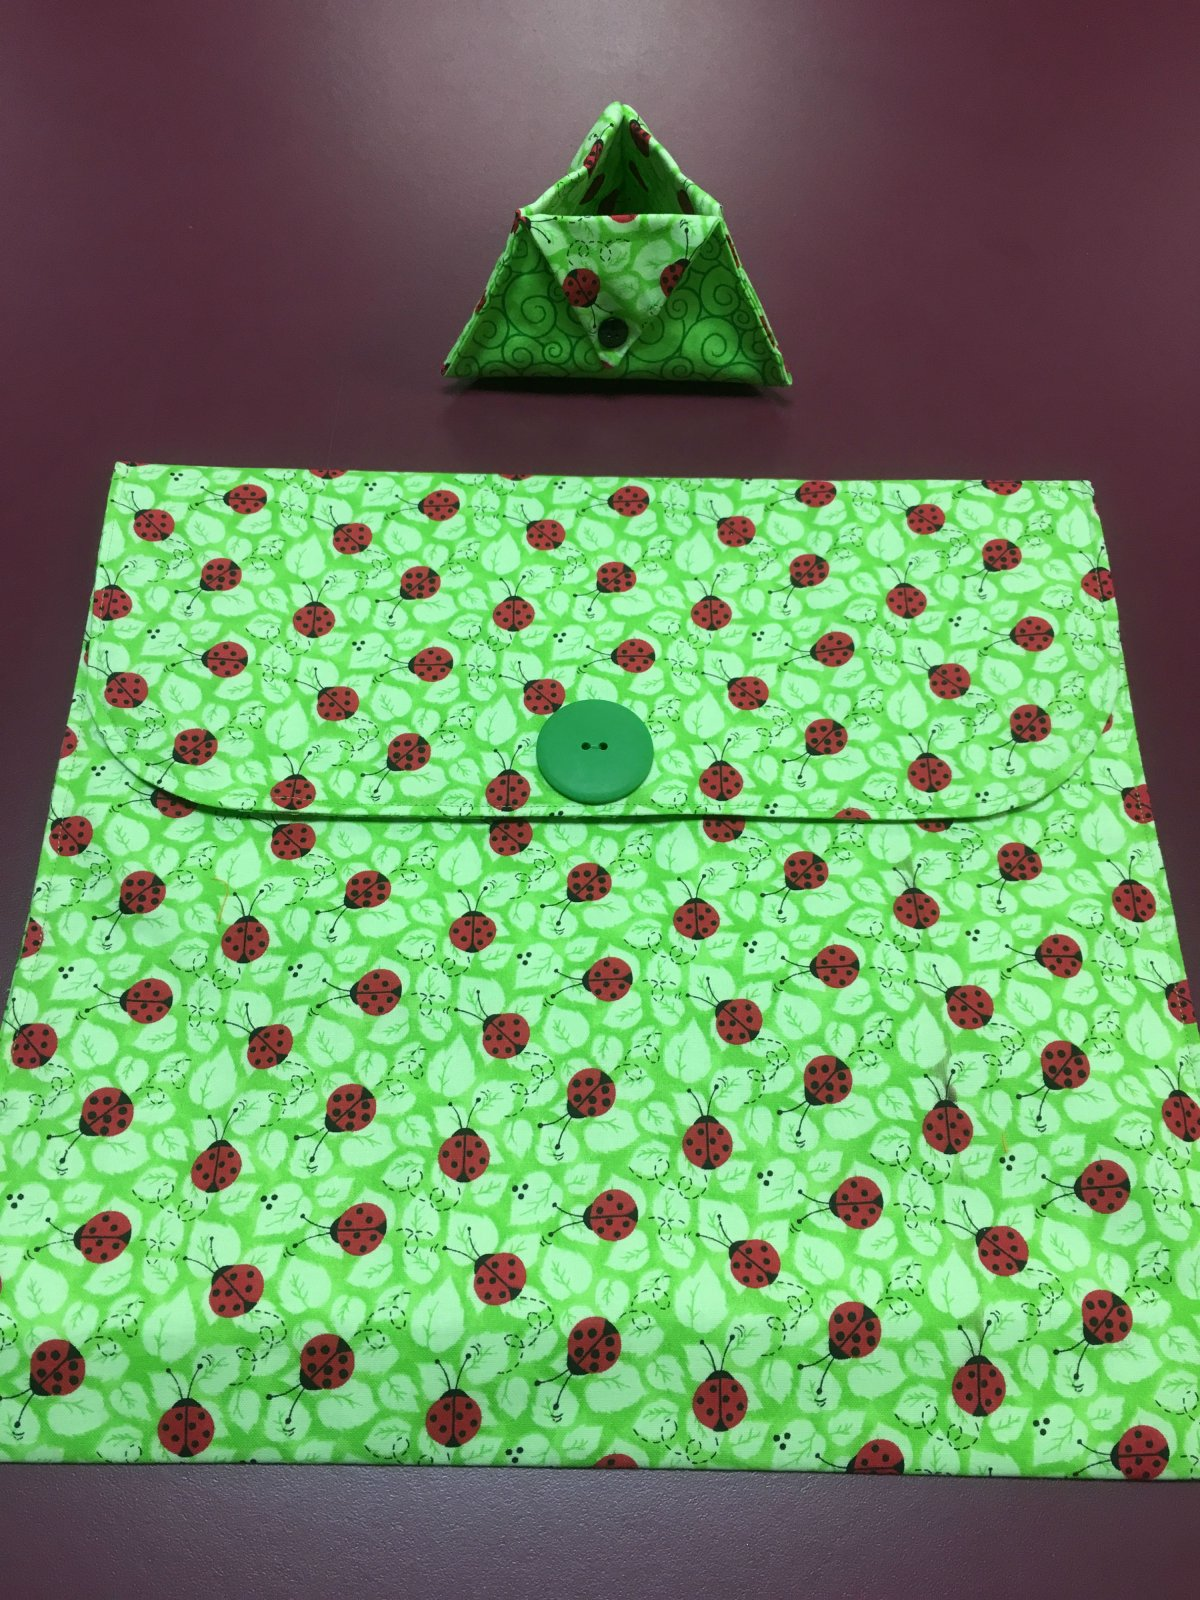 Project bag and ort bag - Green and Ladybugs 14 x 13.25